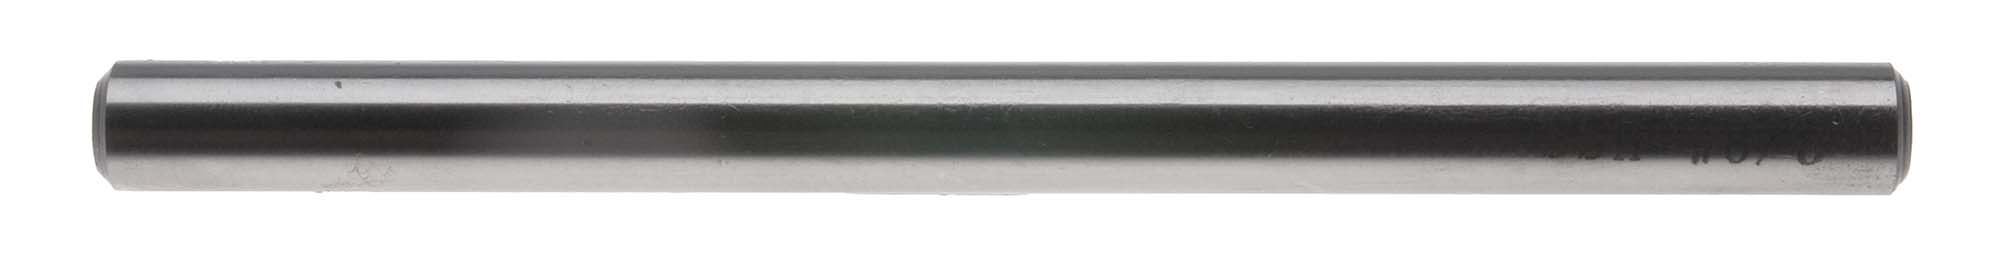 "15/64"" Jobber Length Drill Blank - High Speed Steel"